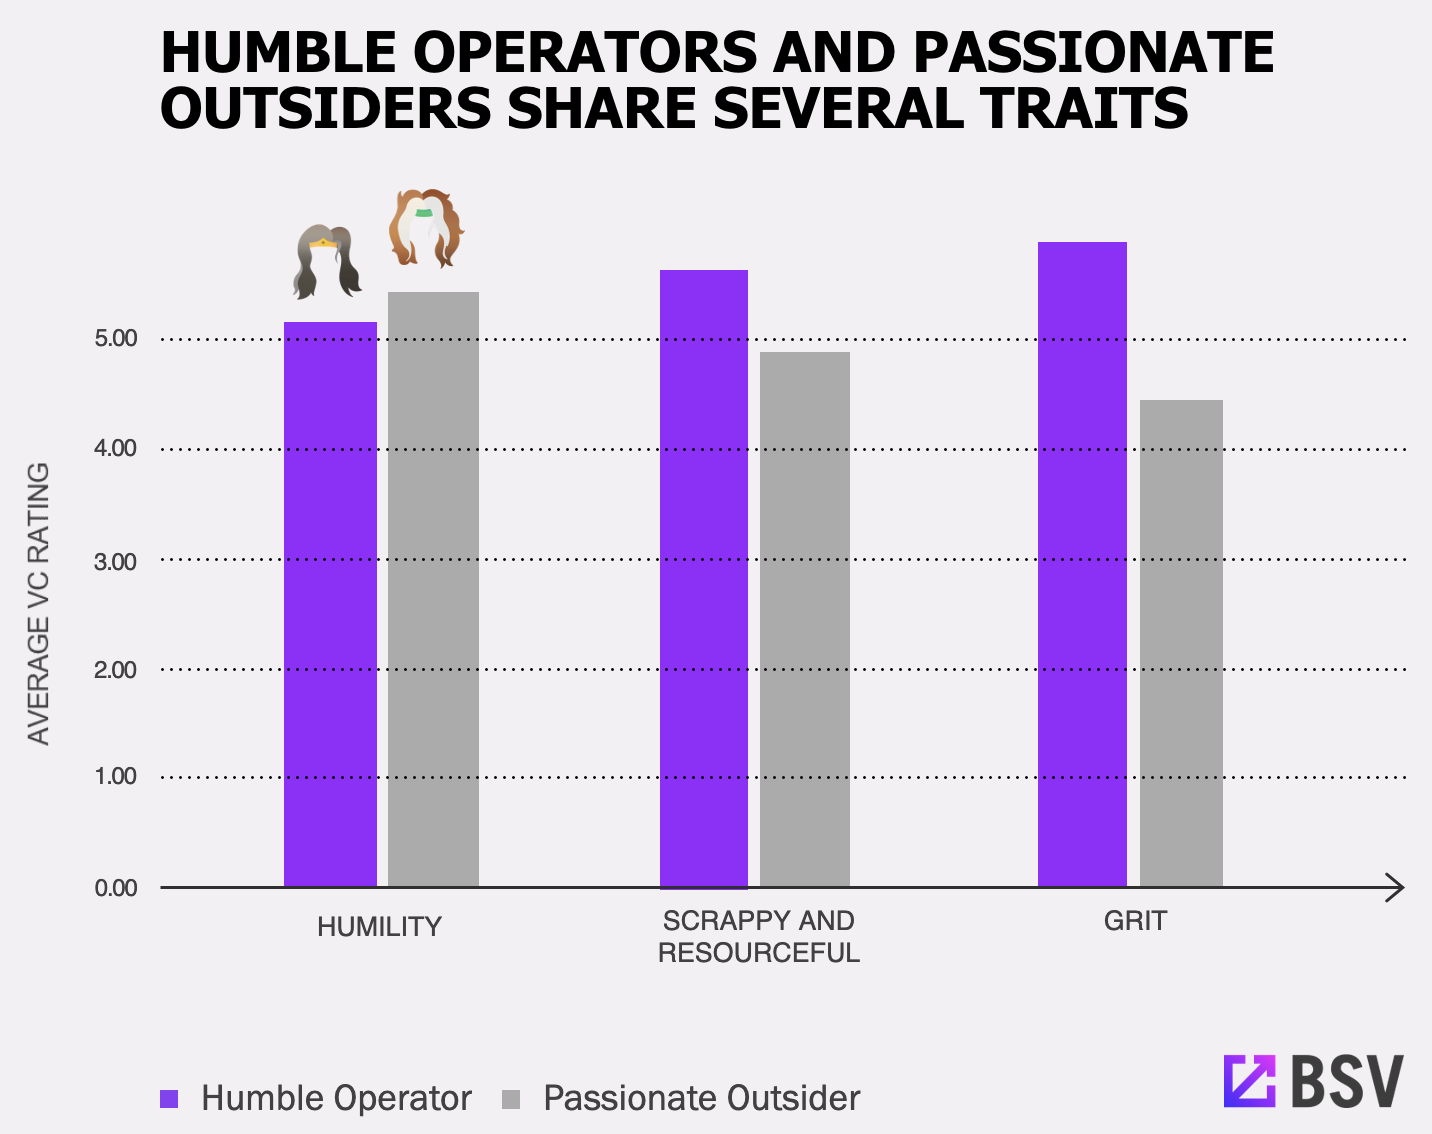 Humble Operators and Passionate Outsiders Share Several Traits